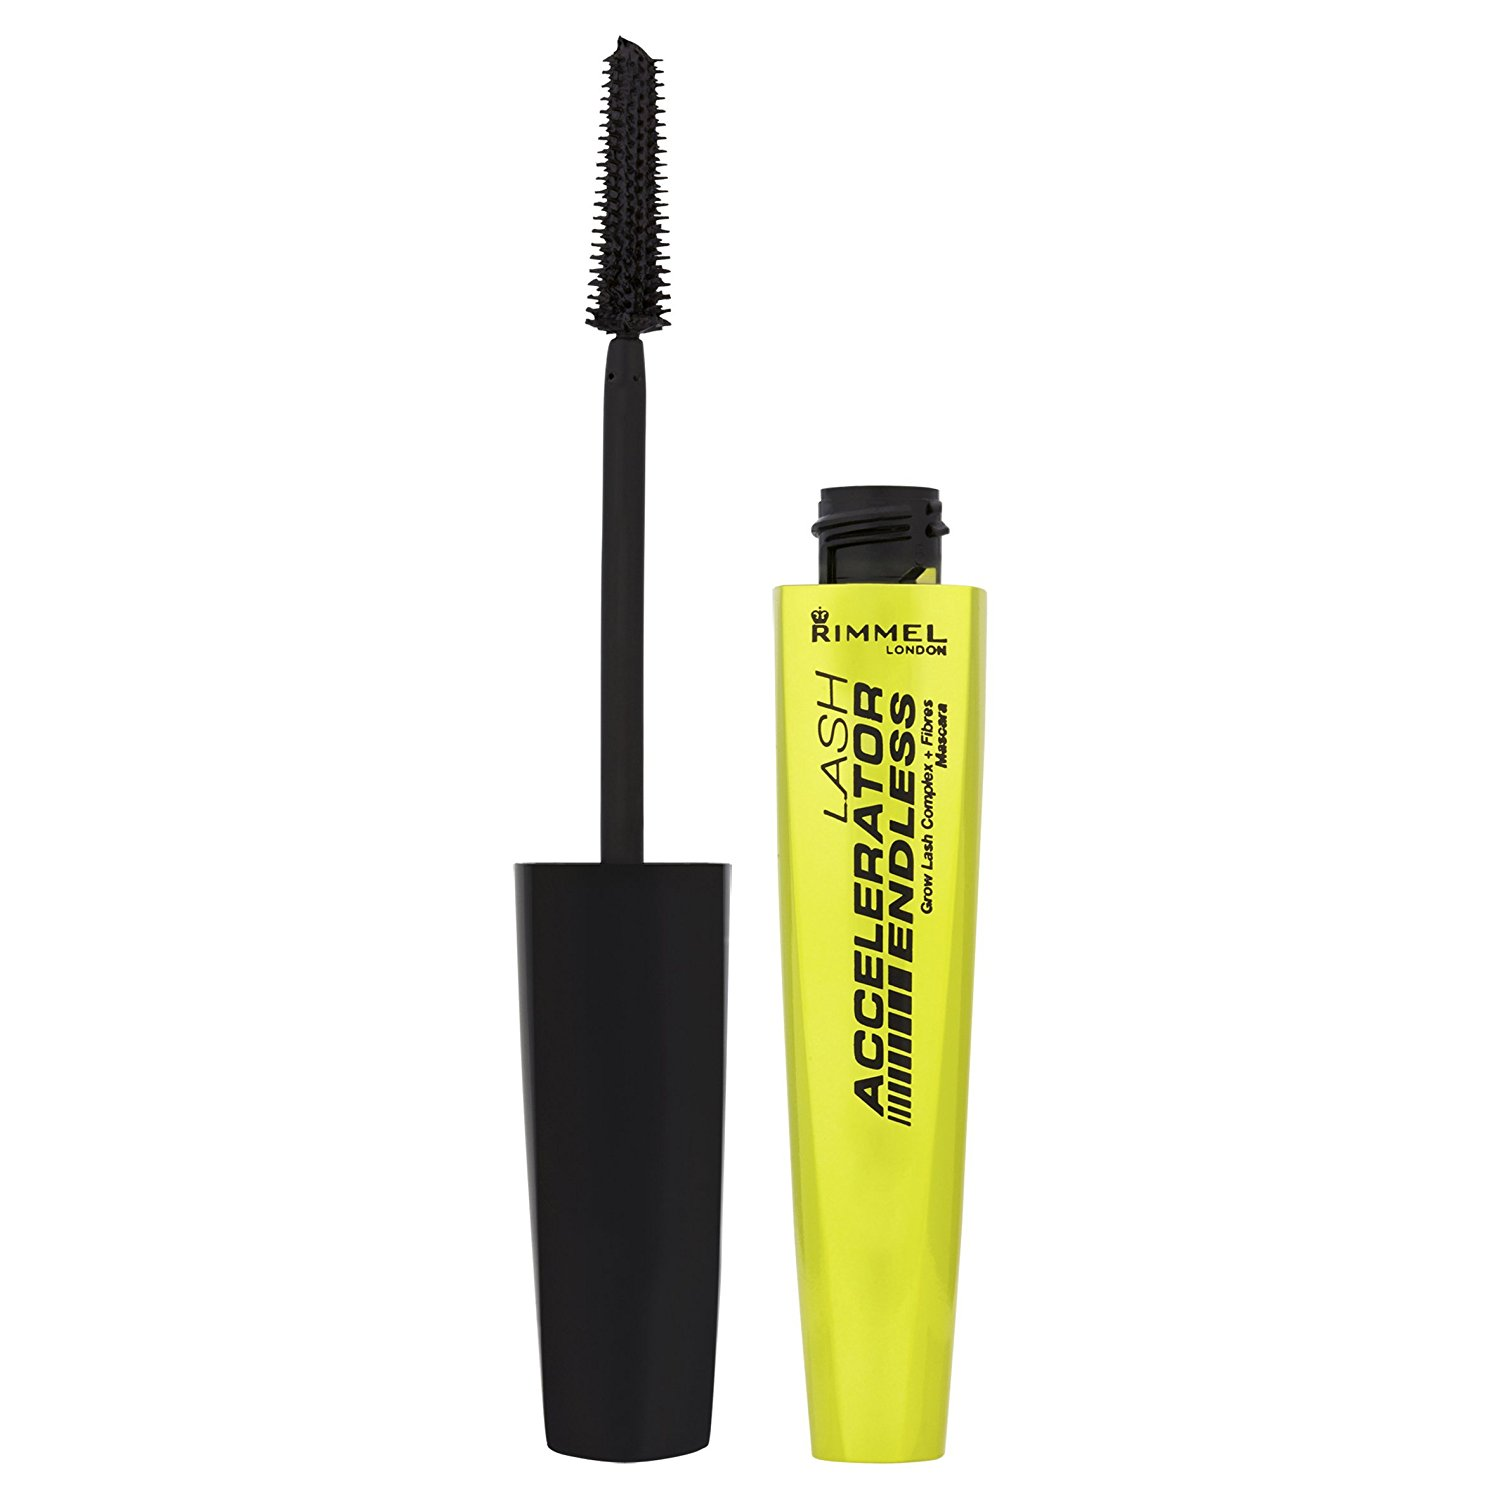 eb51e40a251 Get Quotations · Rimmel London - Lash Accelerator Endless Grow Lash Complex  Mascara - 001 Black. by USA